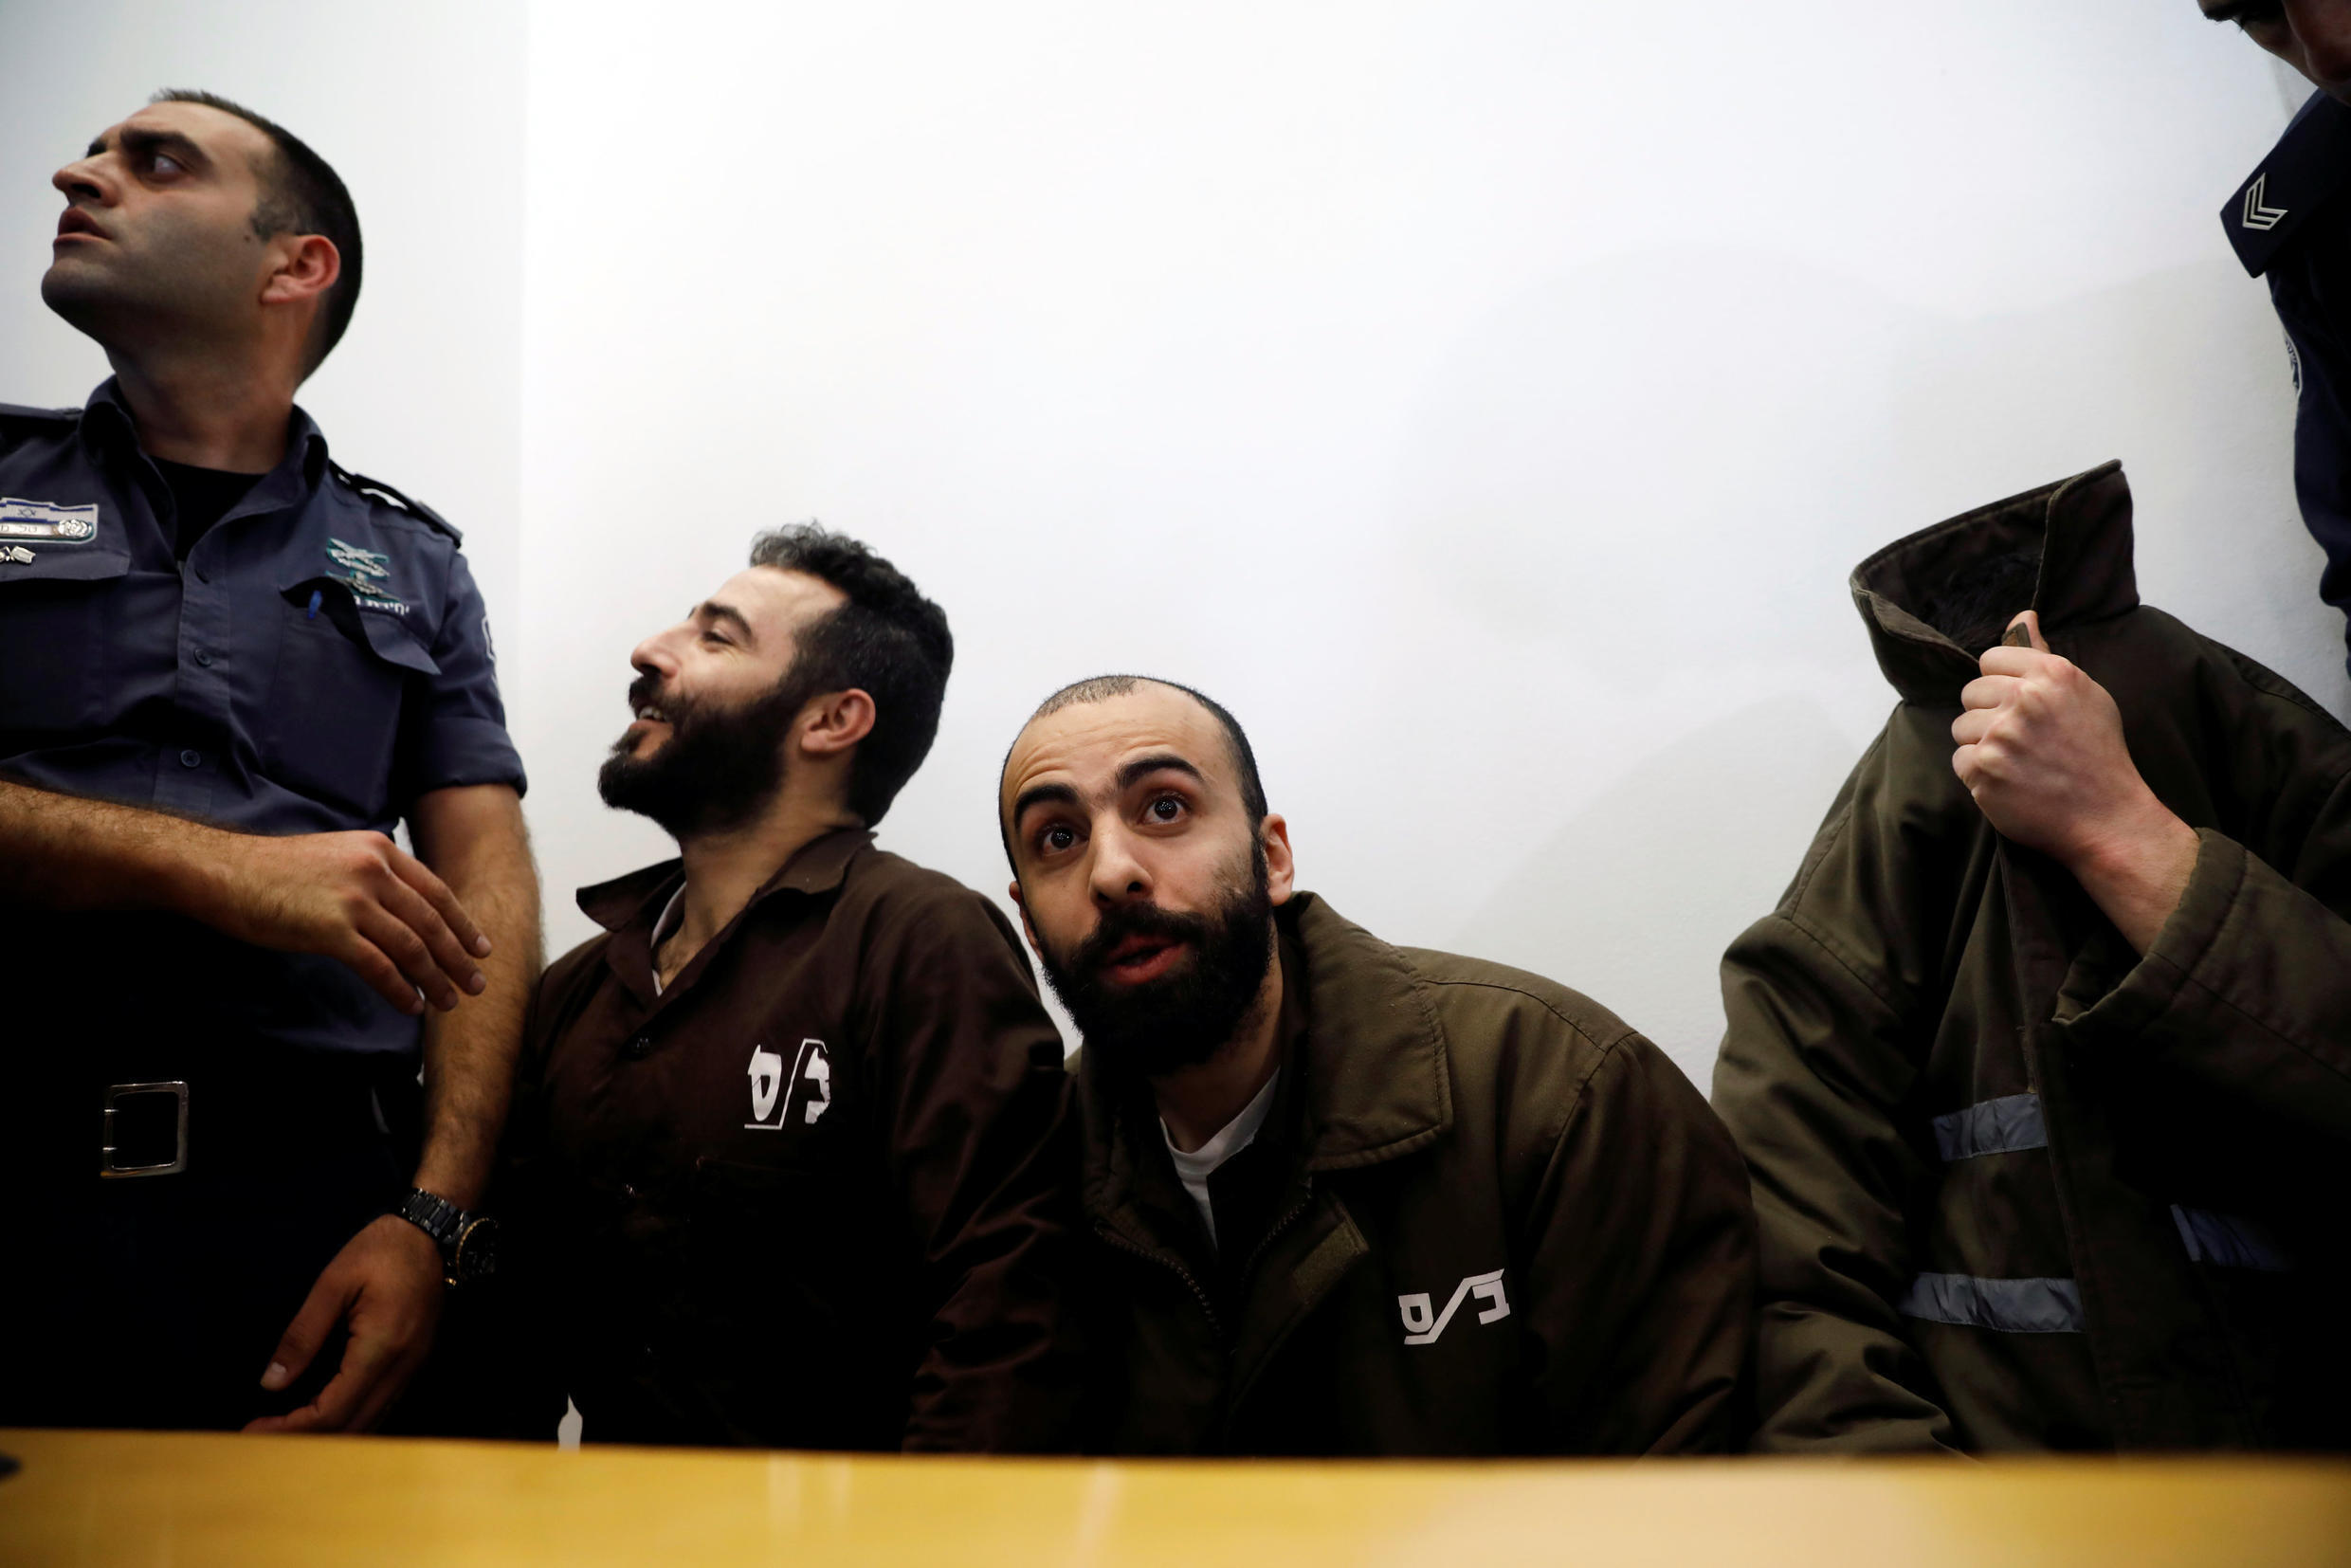 Romain Franck, an employee of the French consulate-general in Jerusalem, appears with co-defendants in the district court in Beersheba, Israel, March 19, 2018.